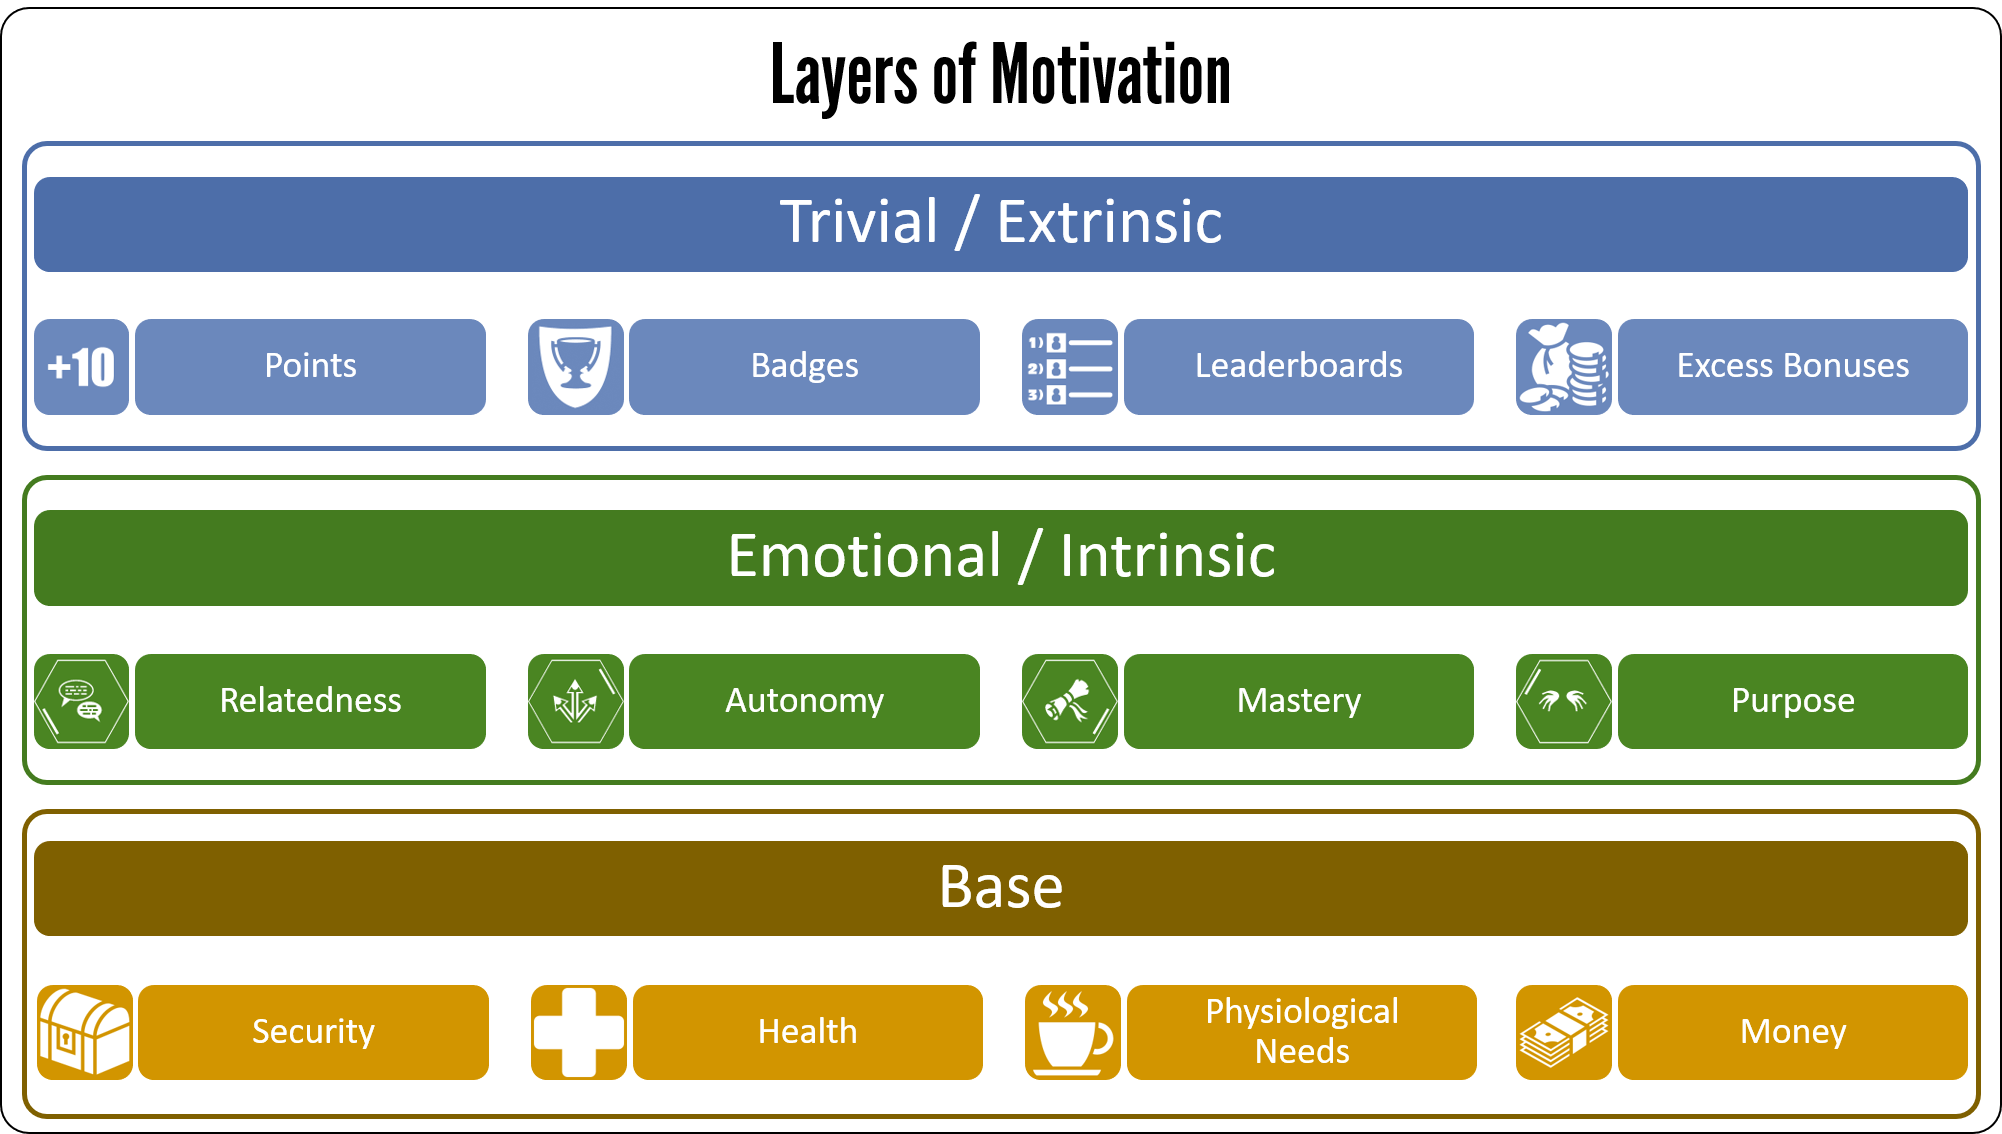 Layers of motivation 2017 The 3 Layers of Motivation 2018 Edition